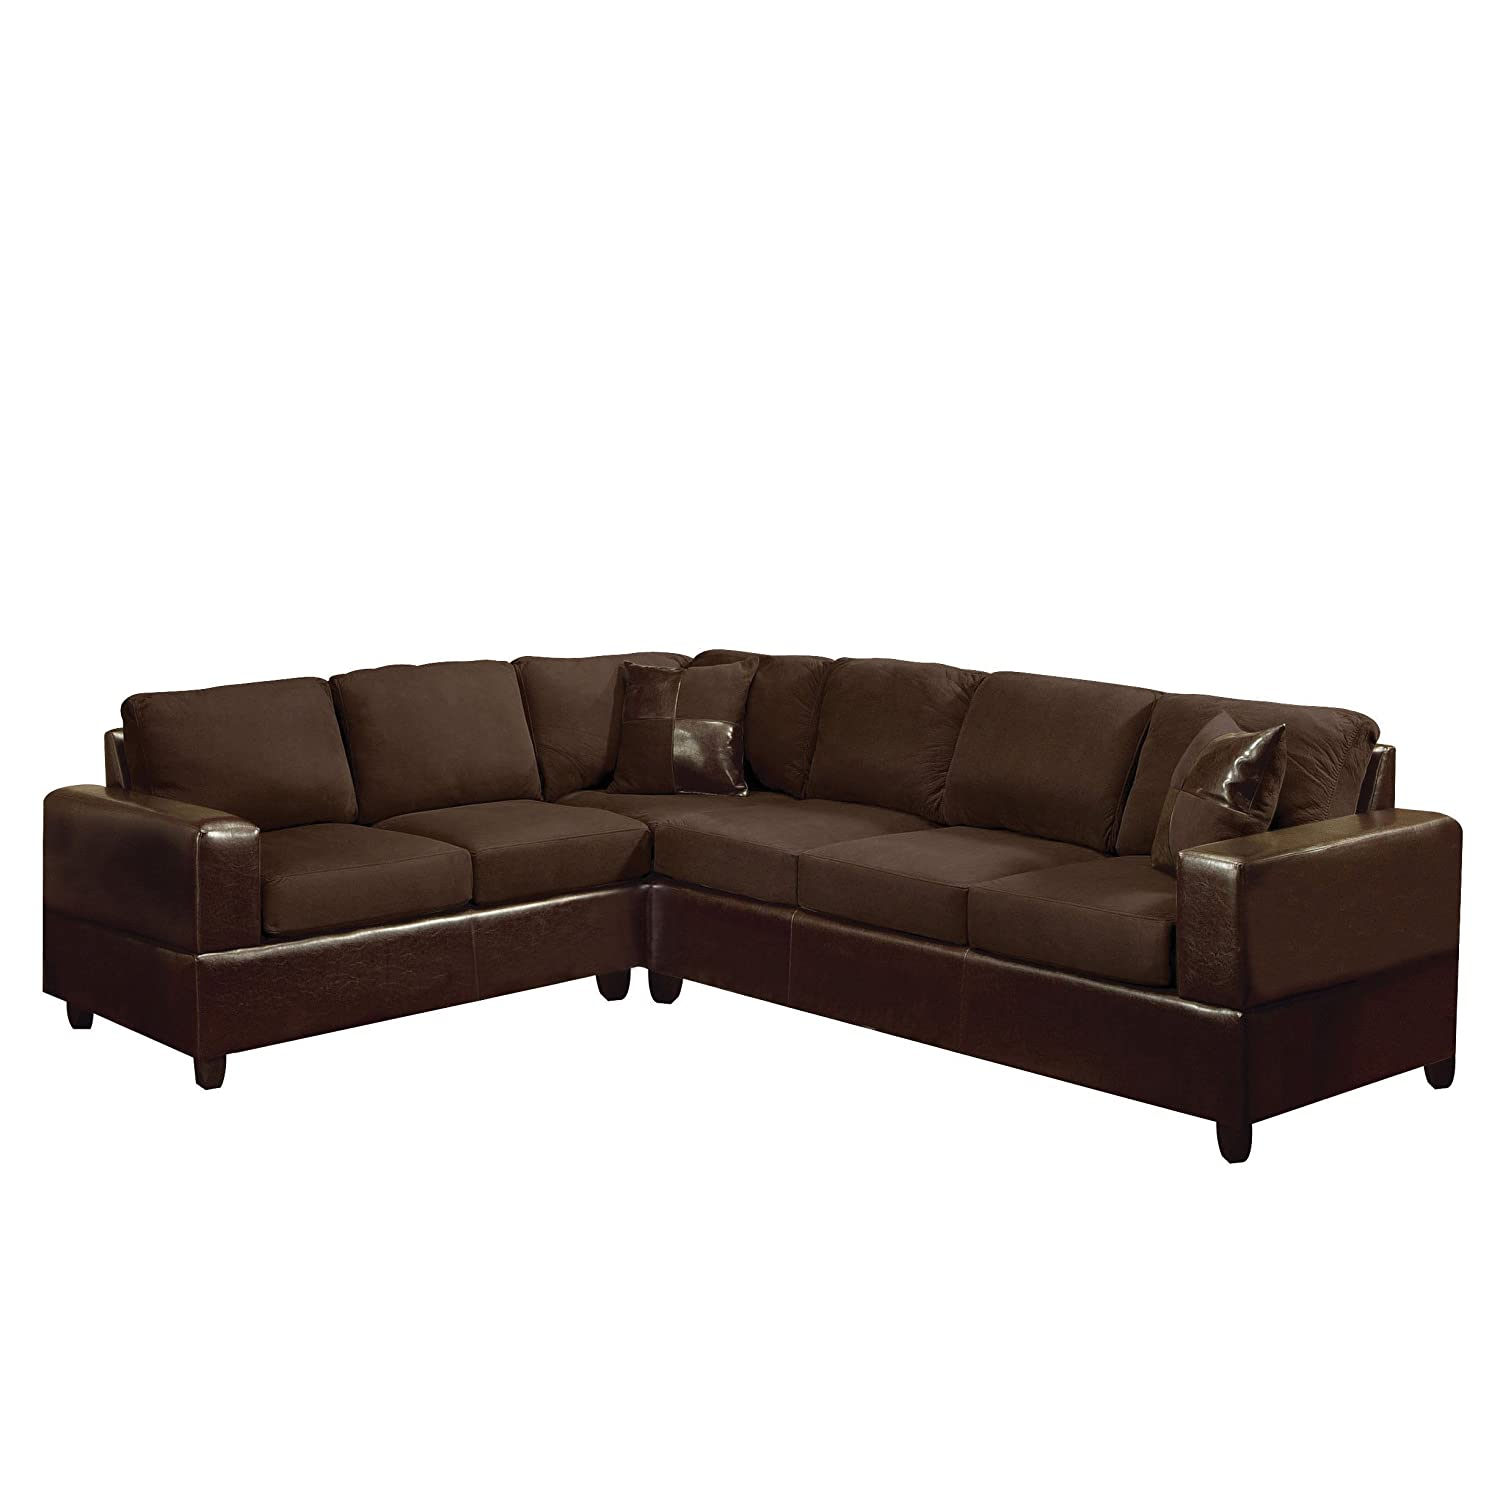 best place to buy sectional sofa low level uk